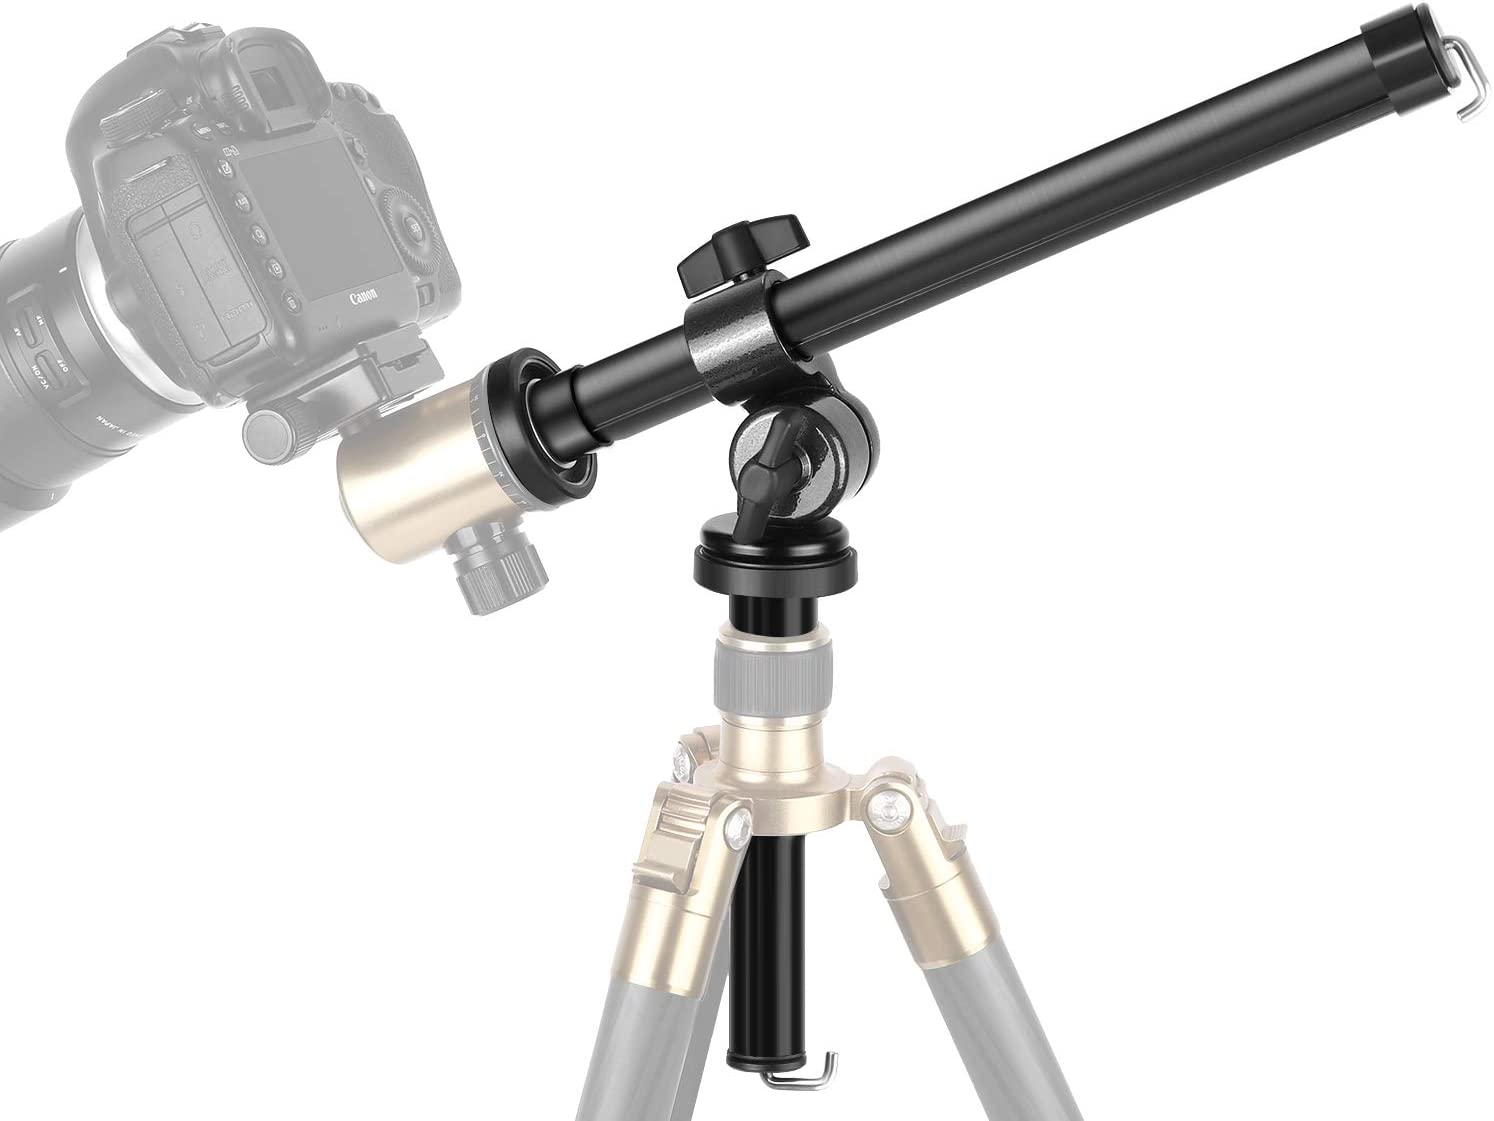 Professional Photography Bracket Clamp Aluminium Alloy Portable Camera Video Slider Support Tripod Rods for Studio Outdoor Macro Over Head Shooting